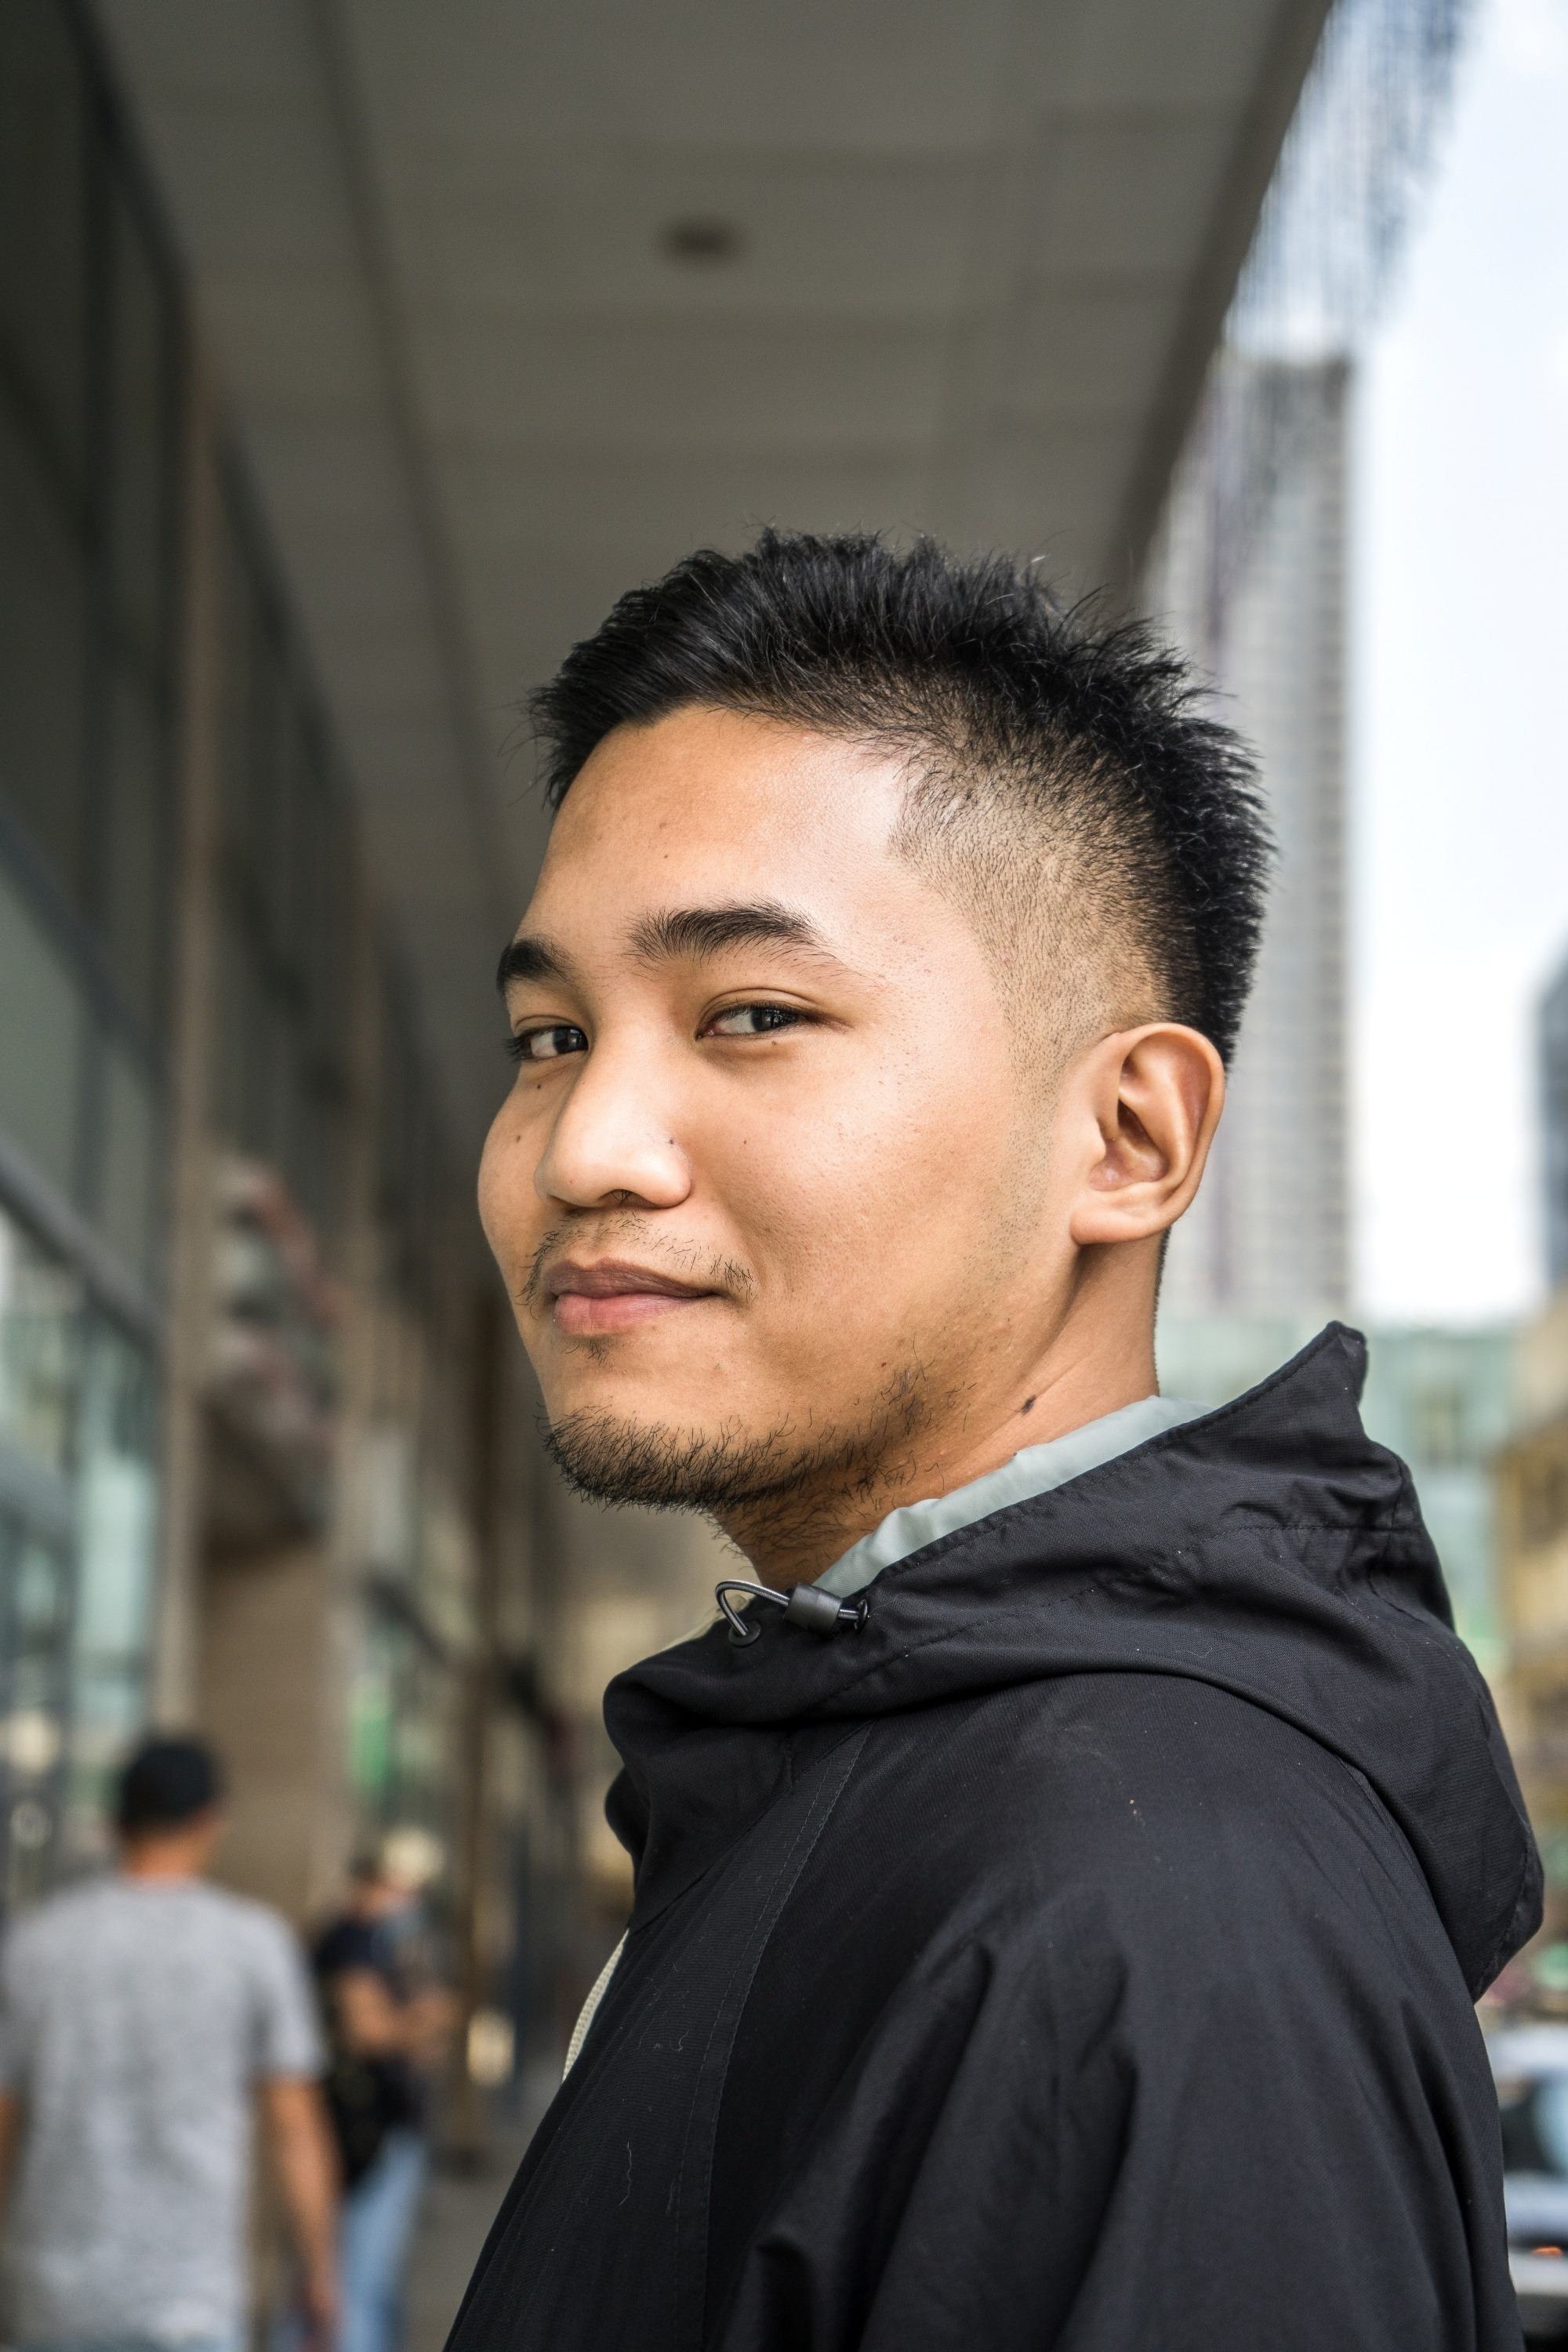 Hairstyles For Men 20 Popular Looks For Pinoys All Things Hair Ph